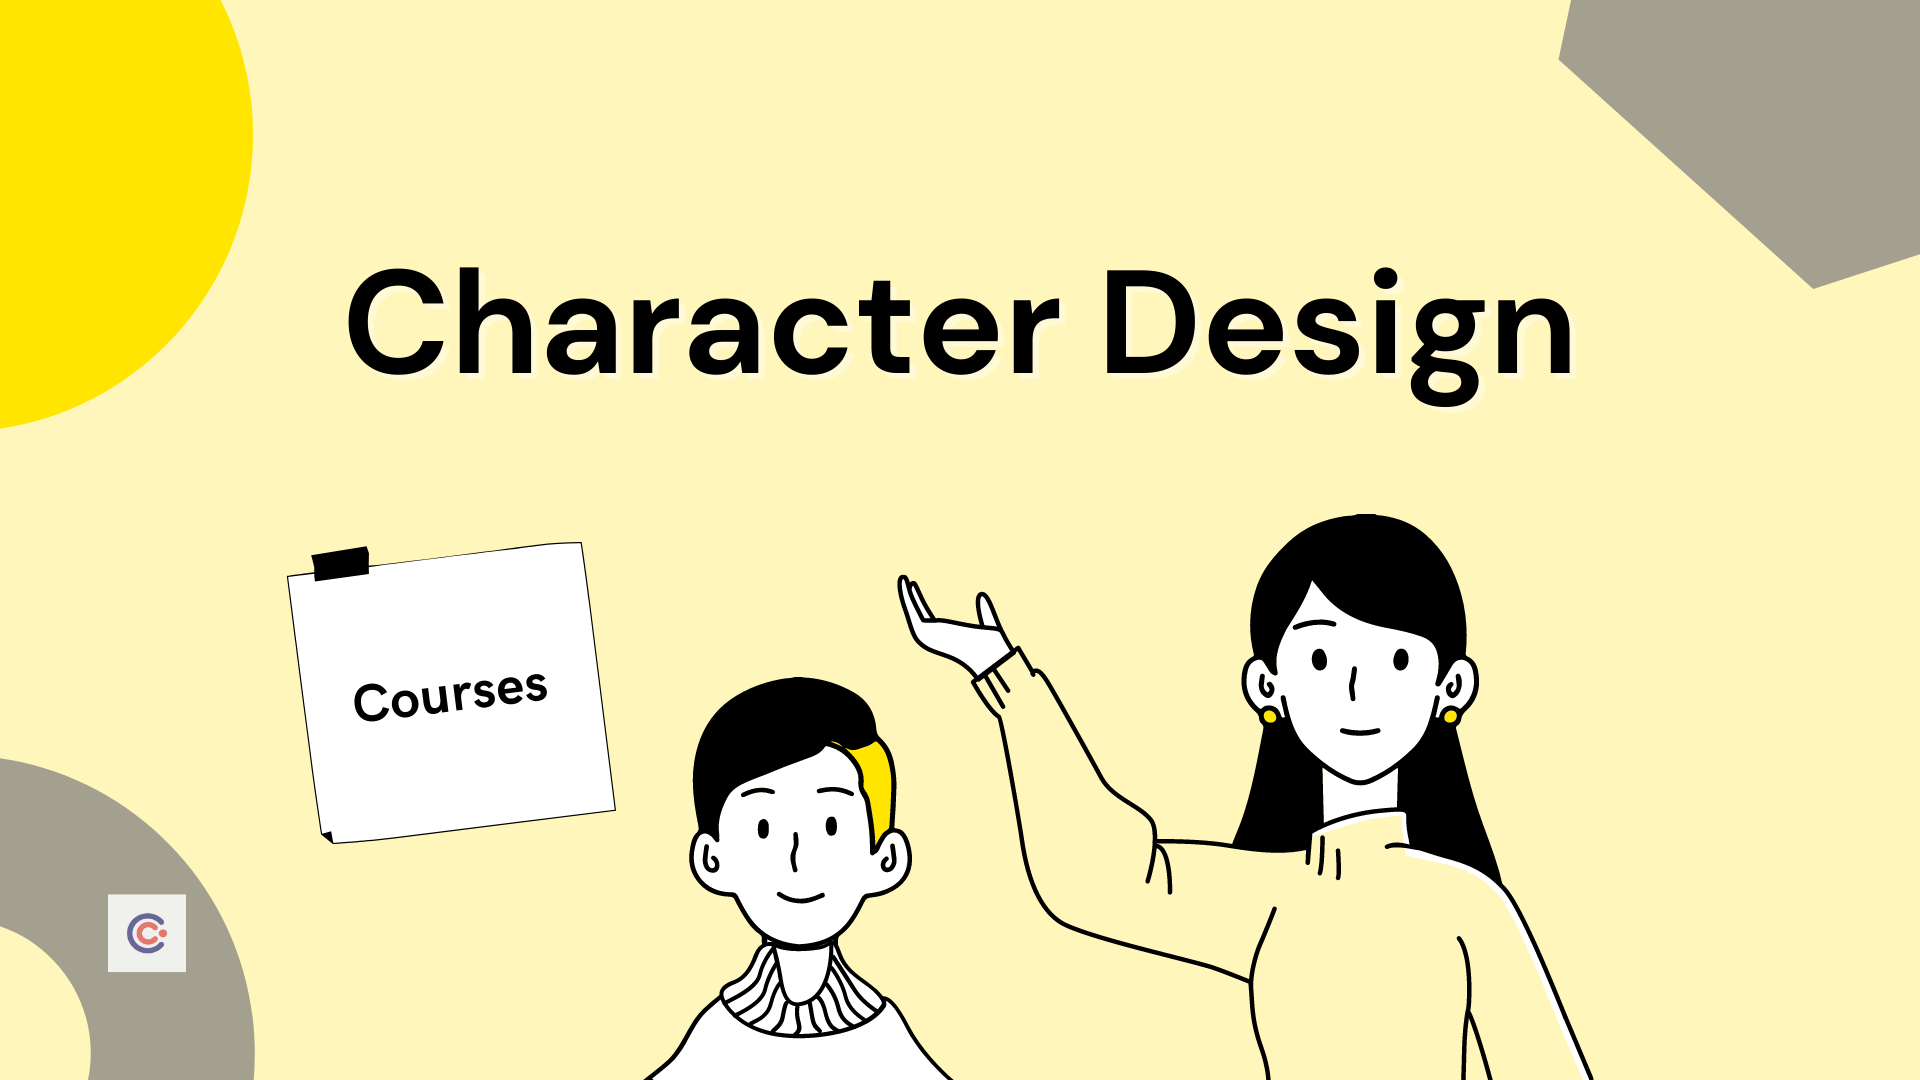 9 Best Character Design Courses - Learn Character Designing Online